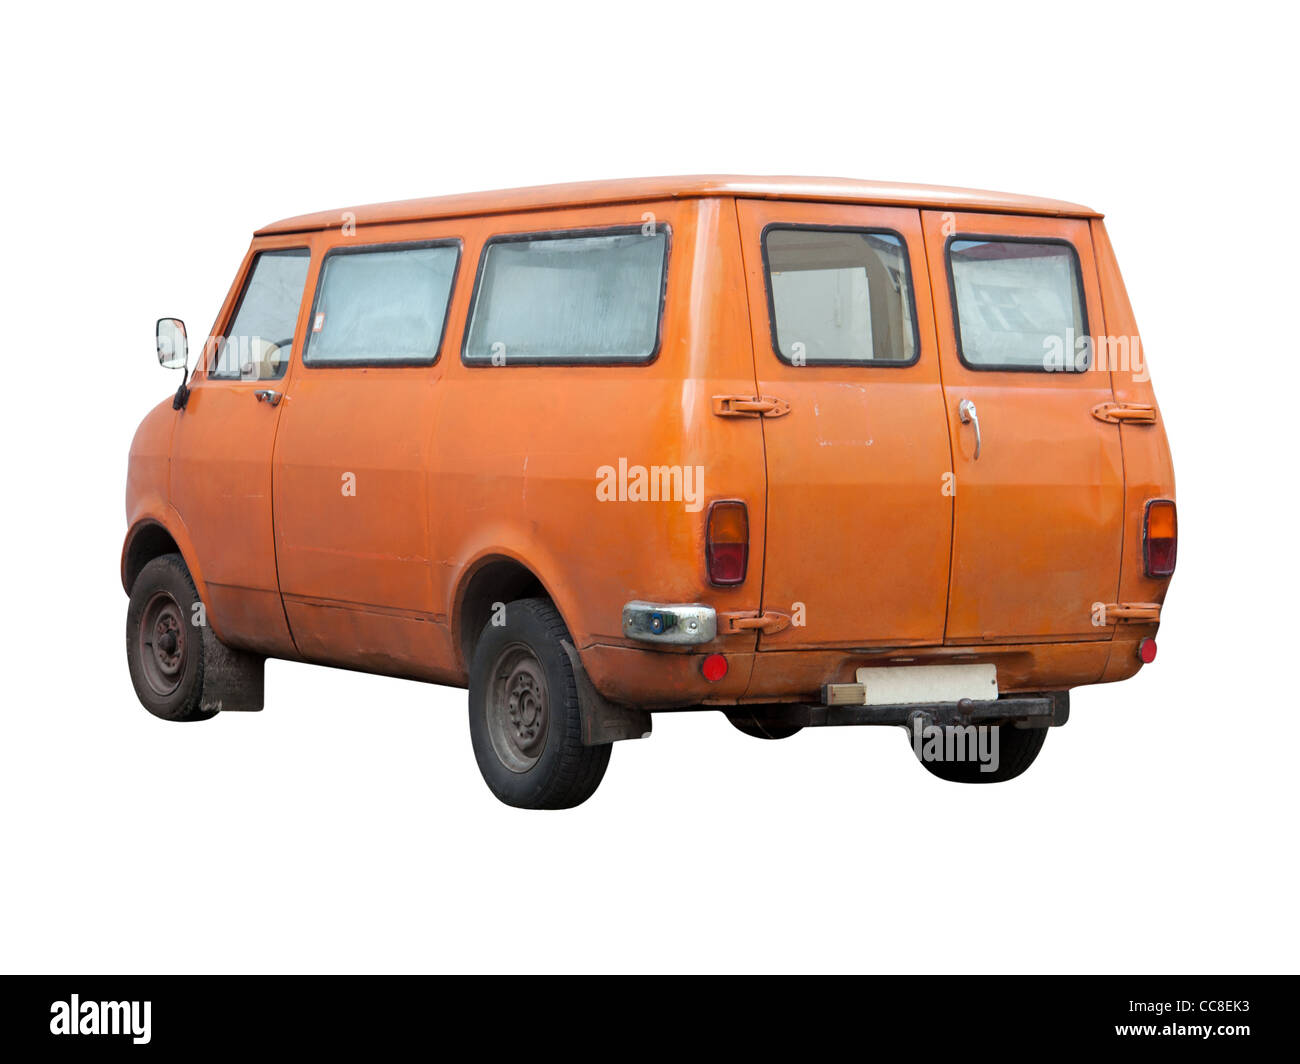 Vintage Transportation Van from Seventies (1970s) - Stock Image